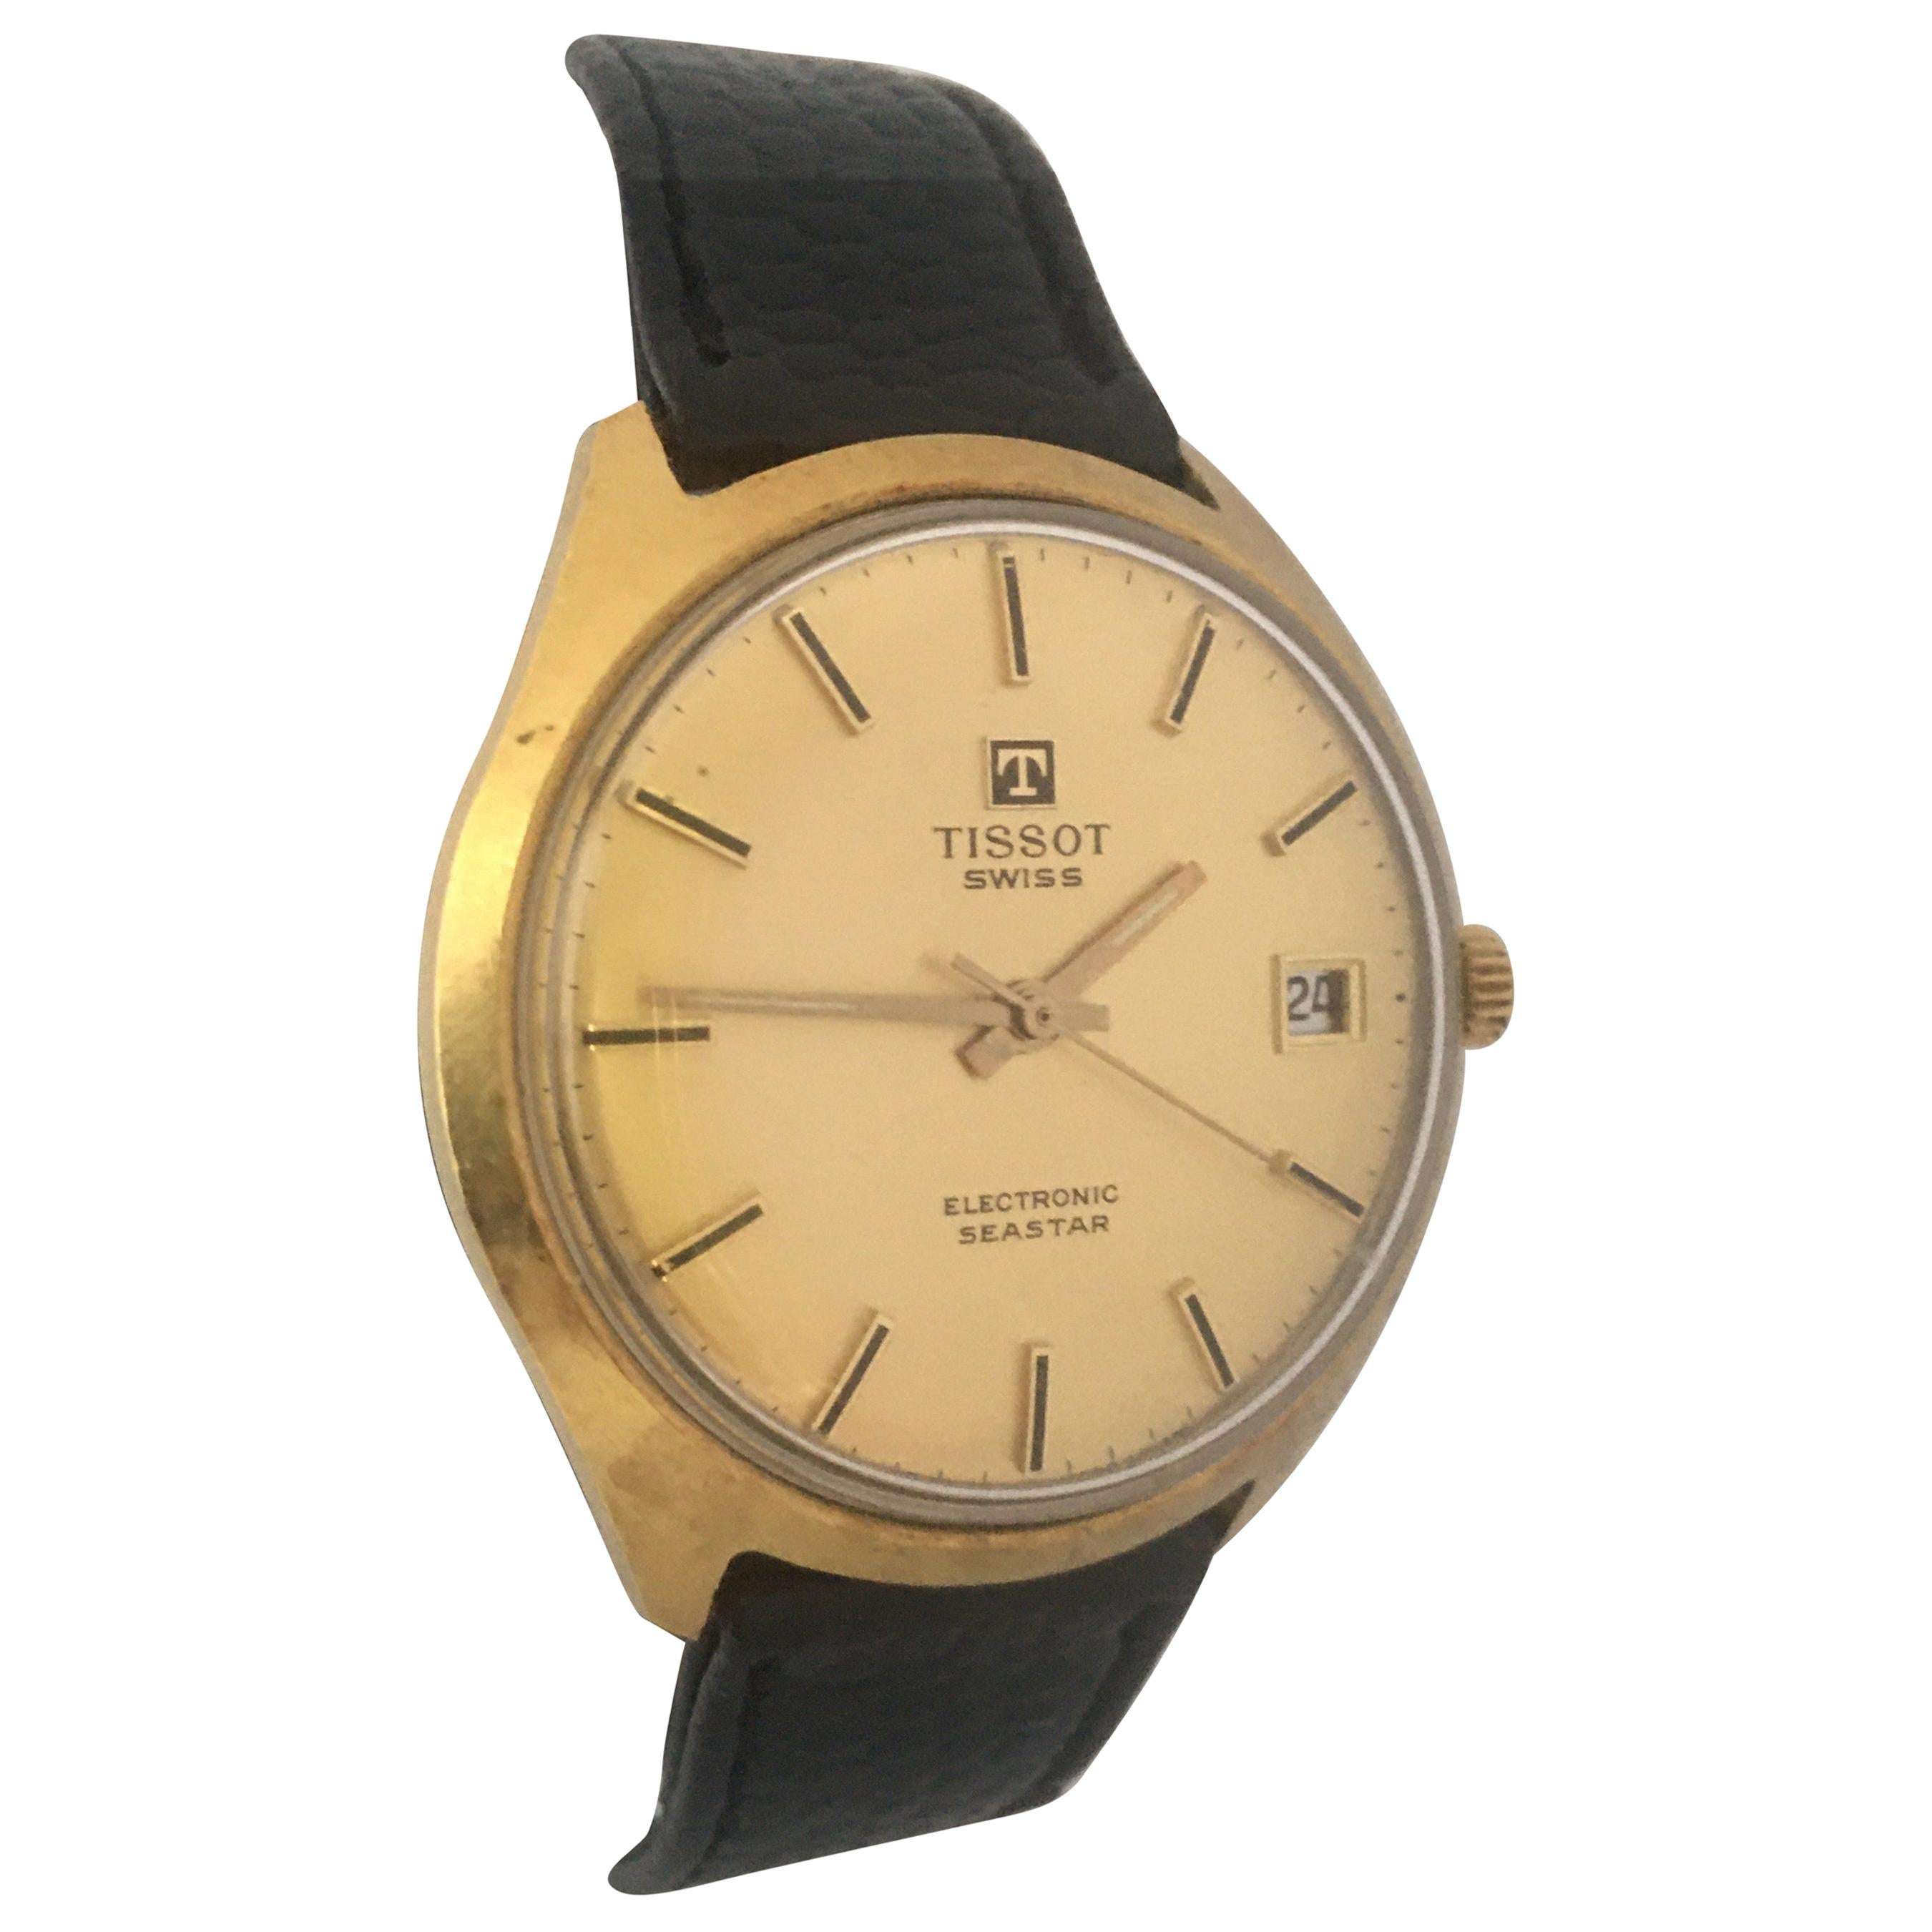 Vintage 1960s Gold-Plated TISSOT Electronic Seastar Watch